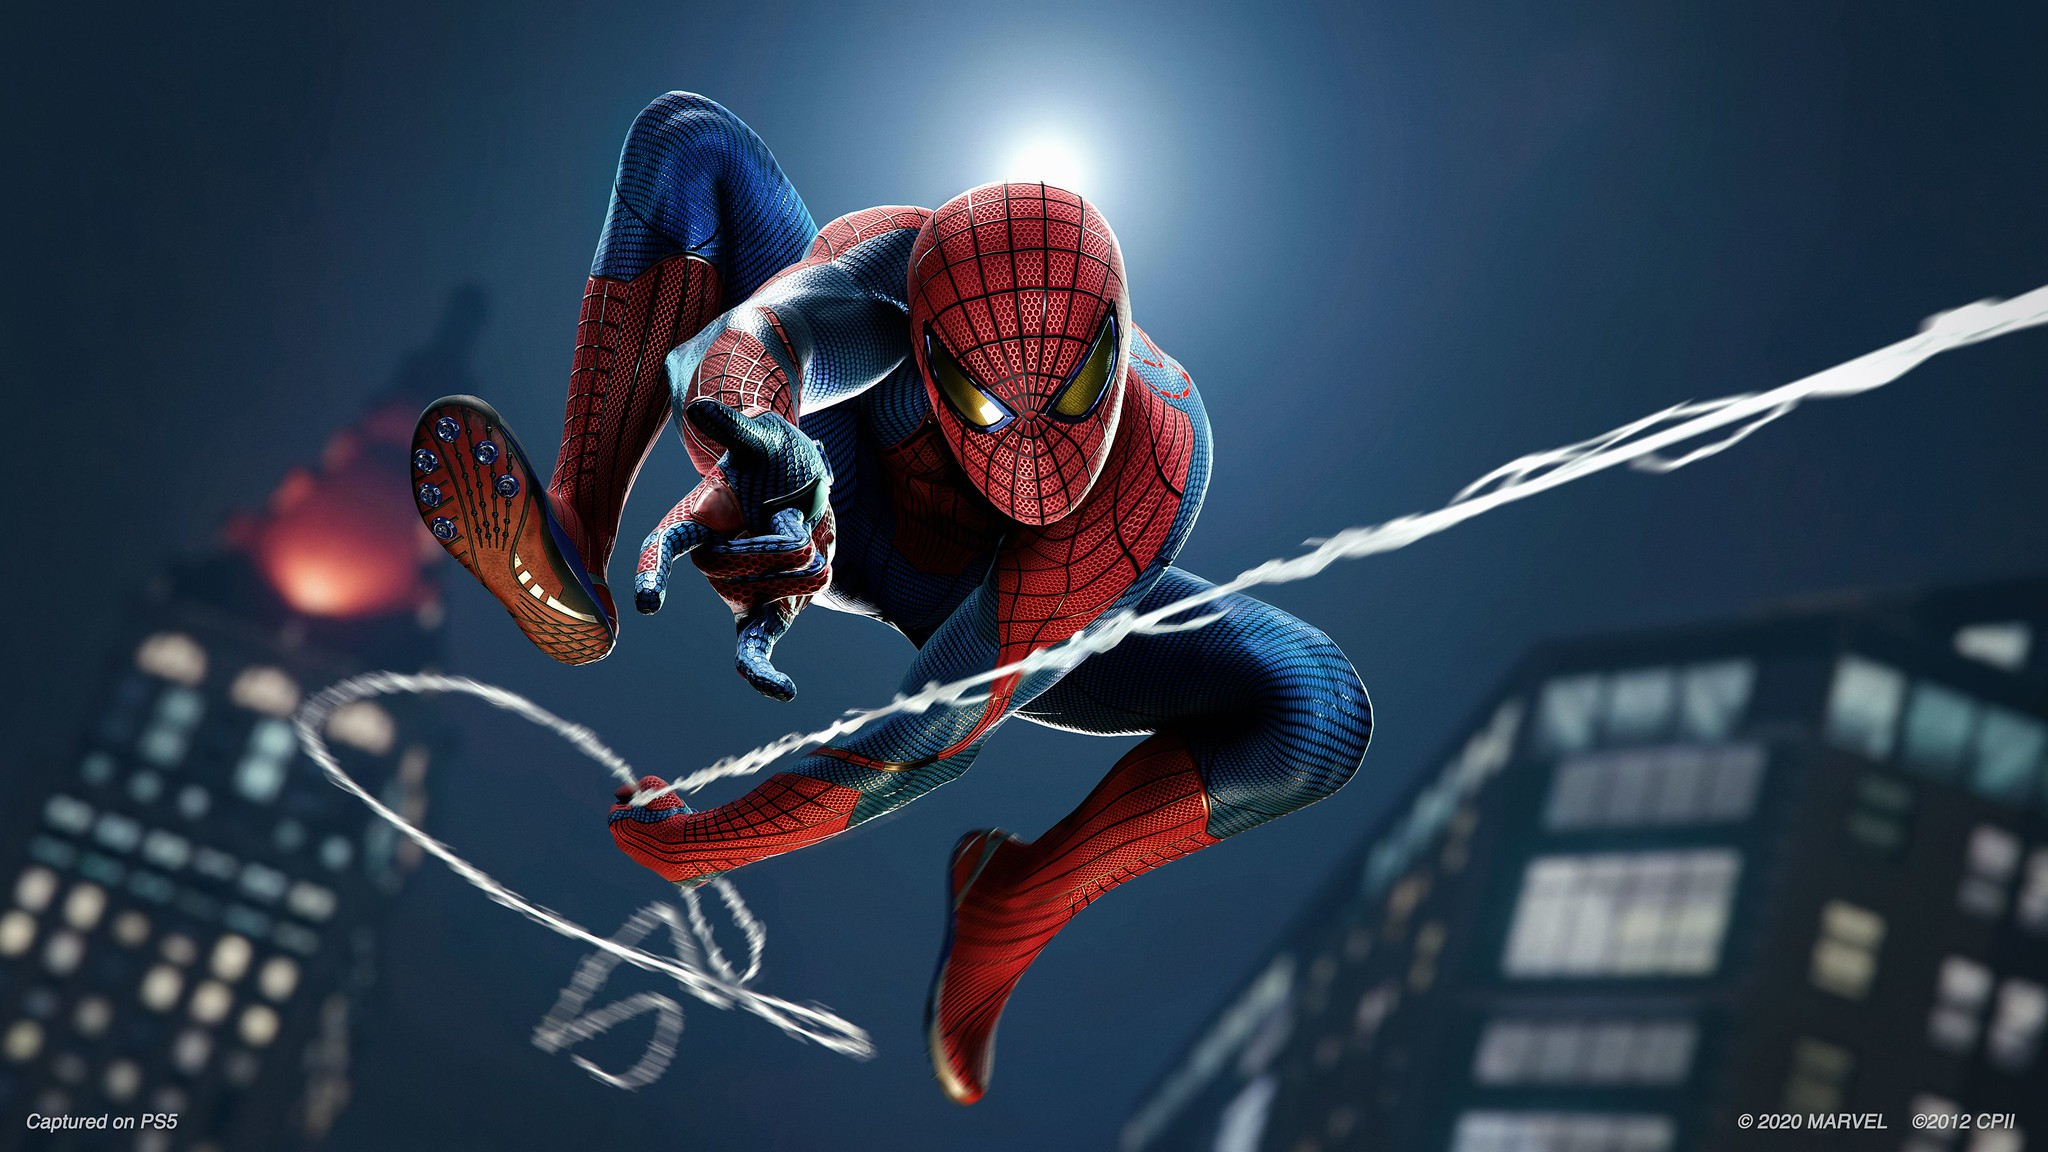 Marvel's Spider-Man Remastered Reveals New Peter Parker, PS5 Details, 60 FPS Gameplay